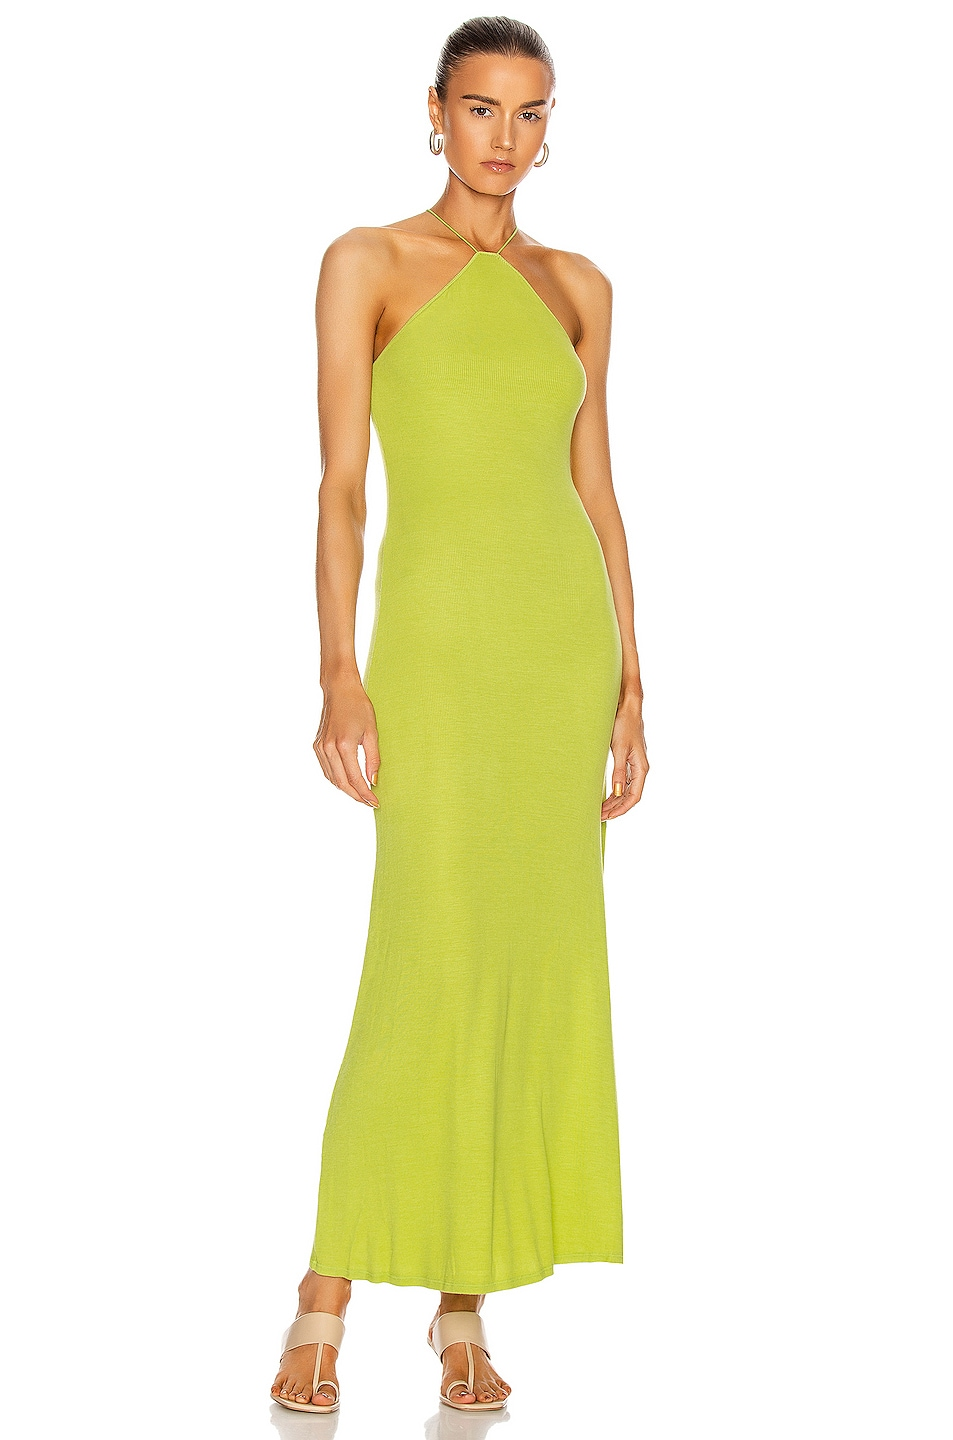 Image 1 of Enza Costa for FWRD Silk Rib Halter Fitted Ankle Dress in Lime